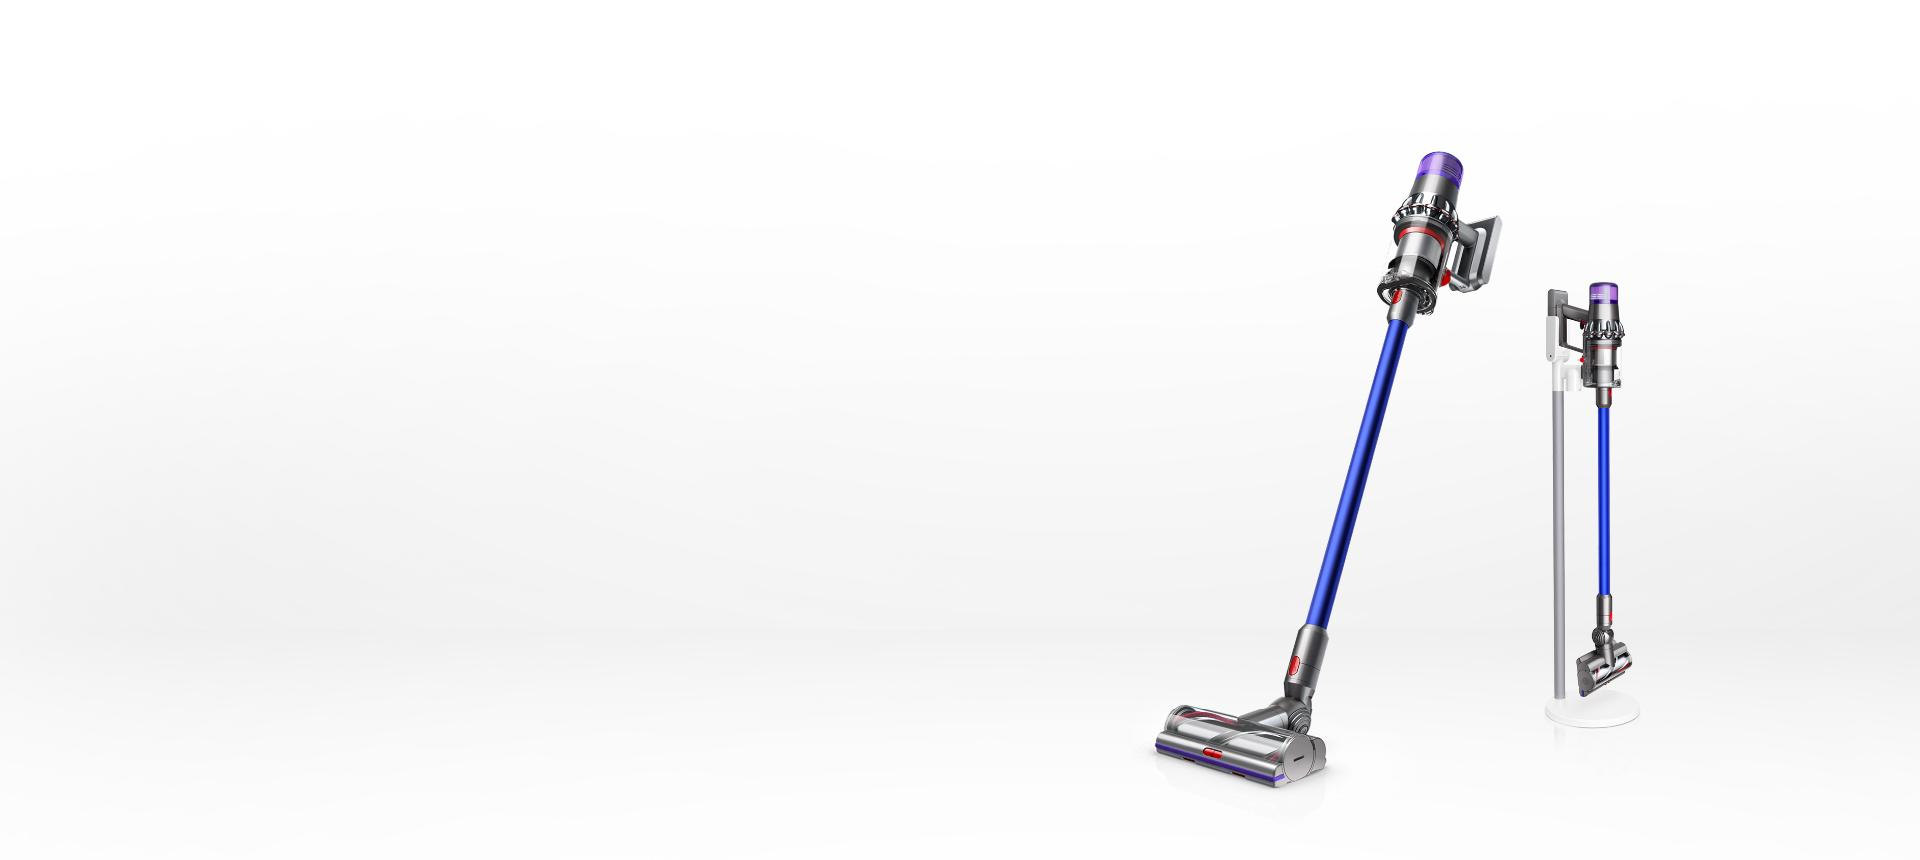 Get the Dyson V11 Dok for $54 with purchase of Dyson V11 Absolute